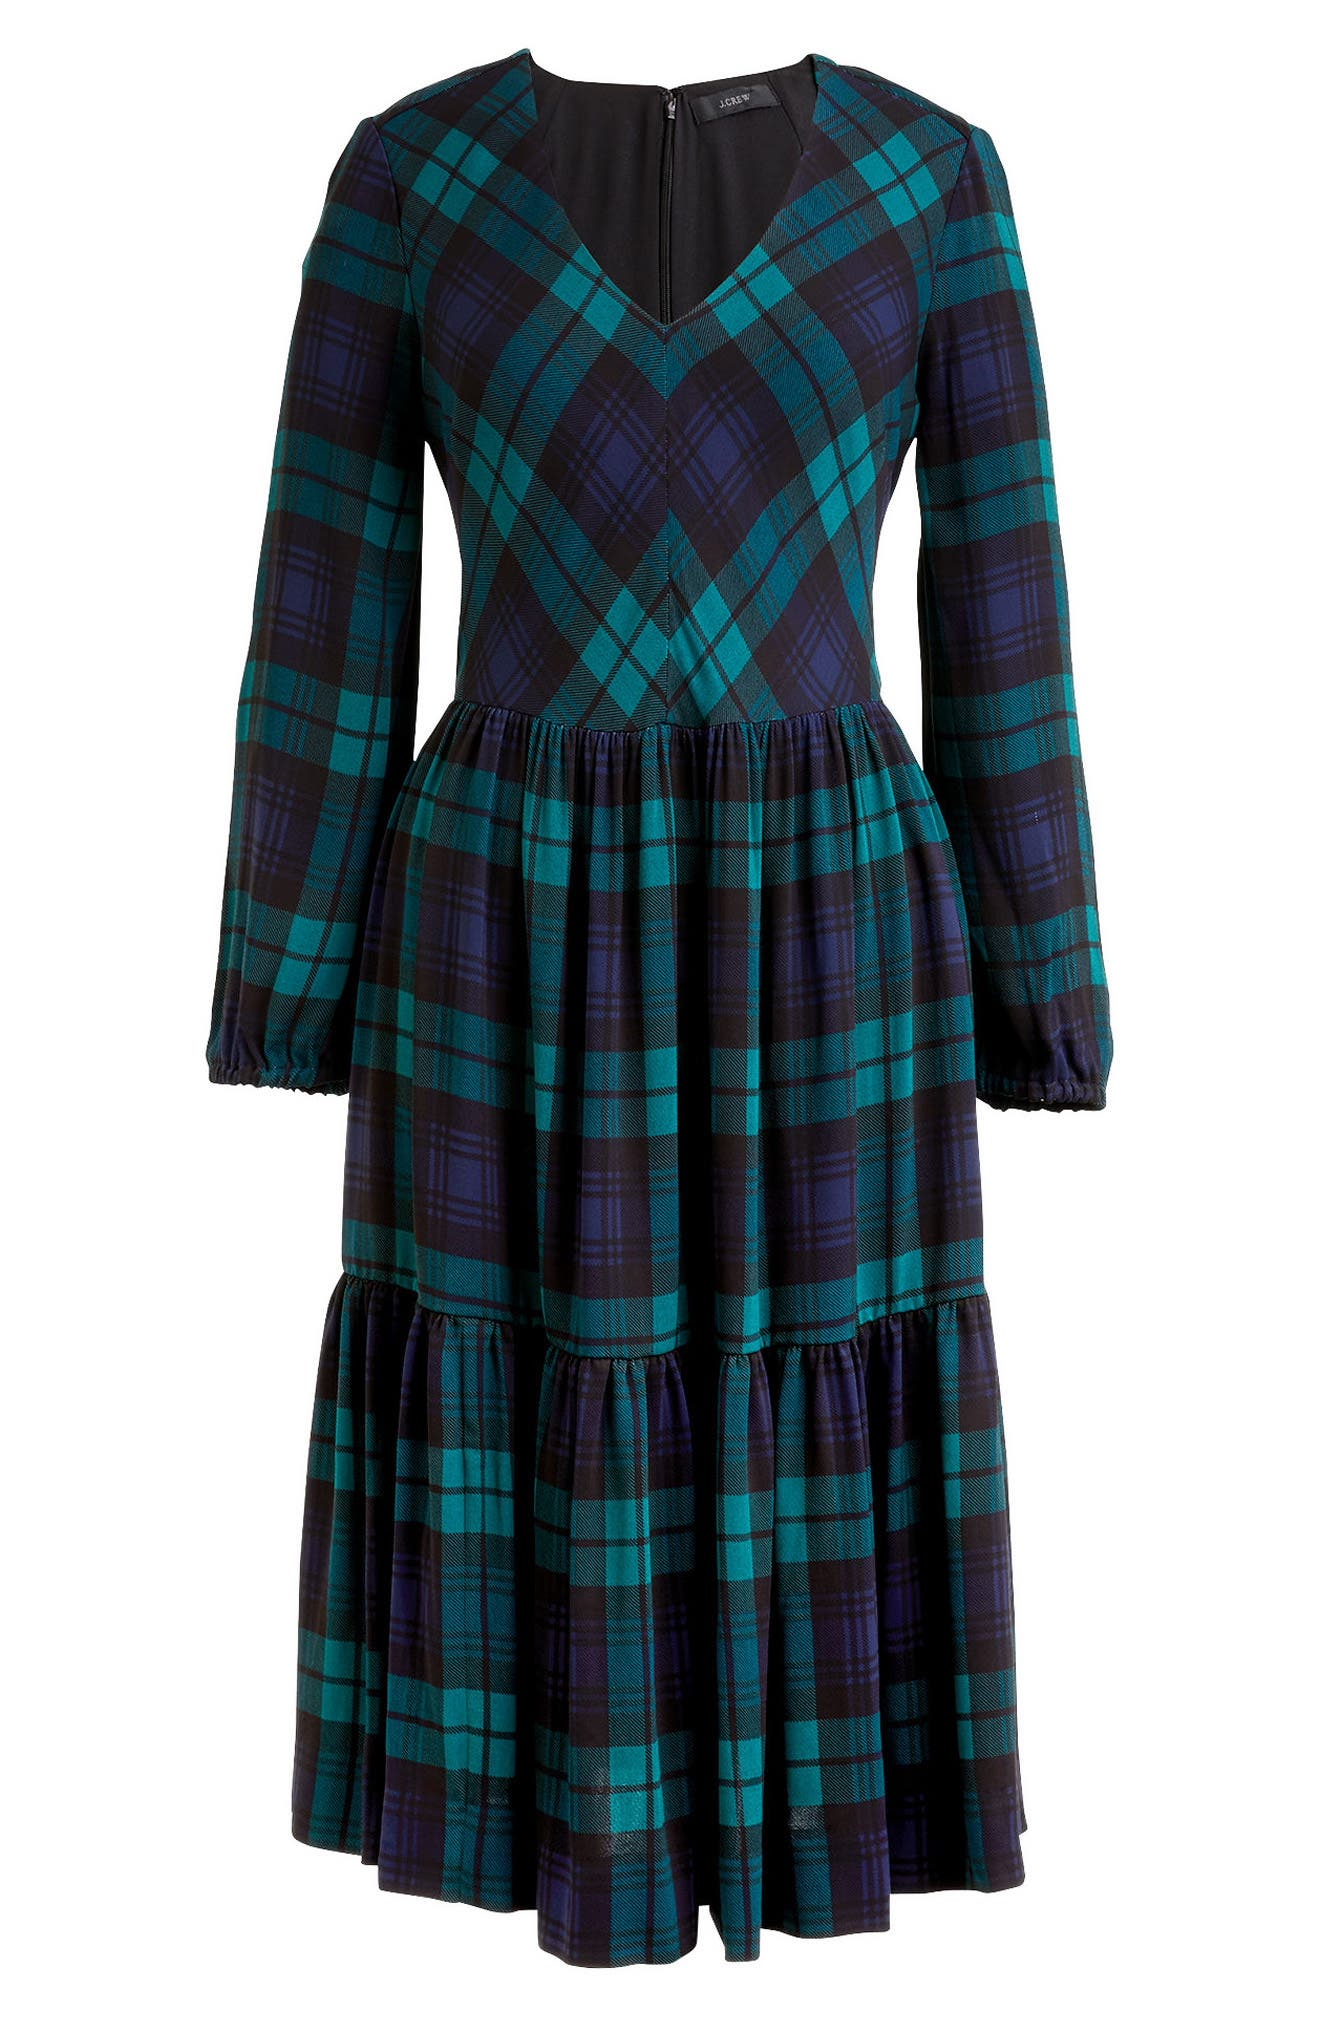 J.Crew Drapey Dress in Black Watch Plaid,                             Alternate thumbnail 3, color,                             Blue/ Green